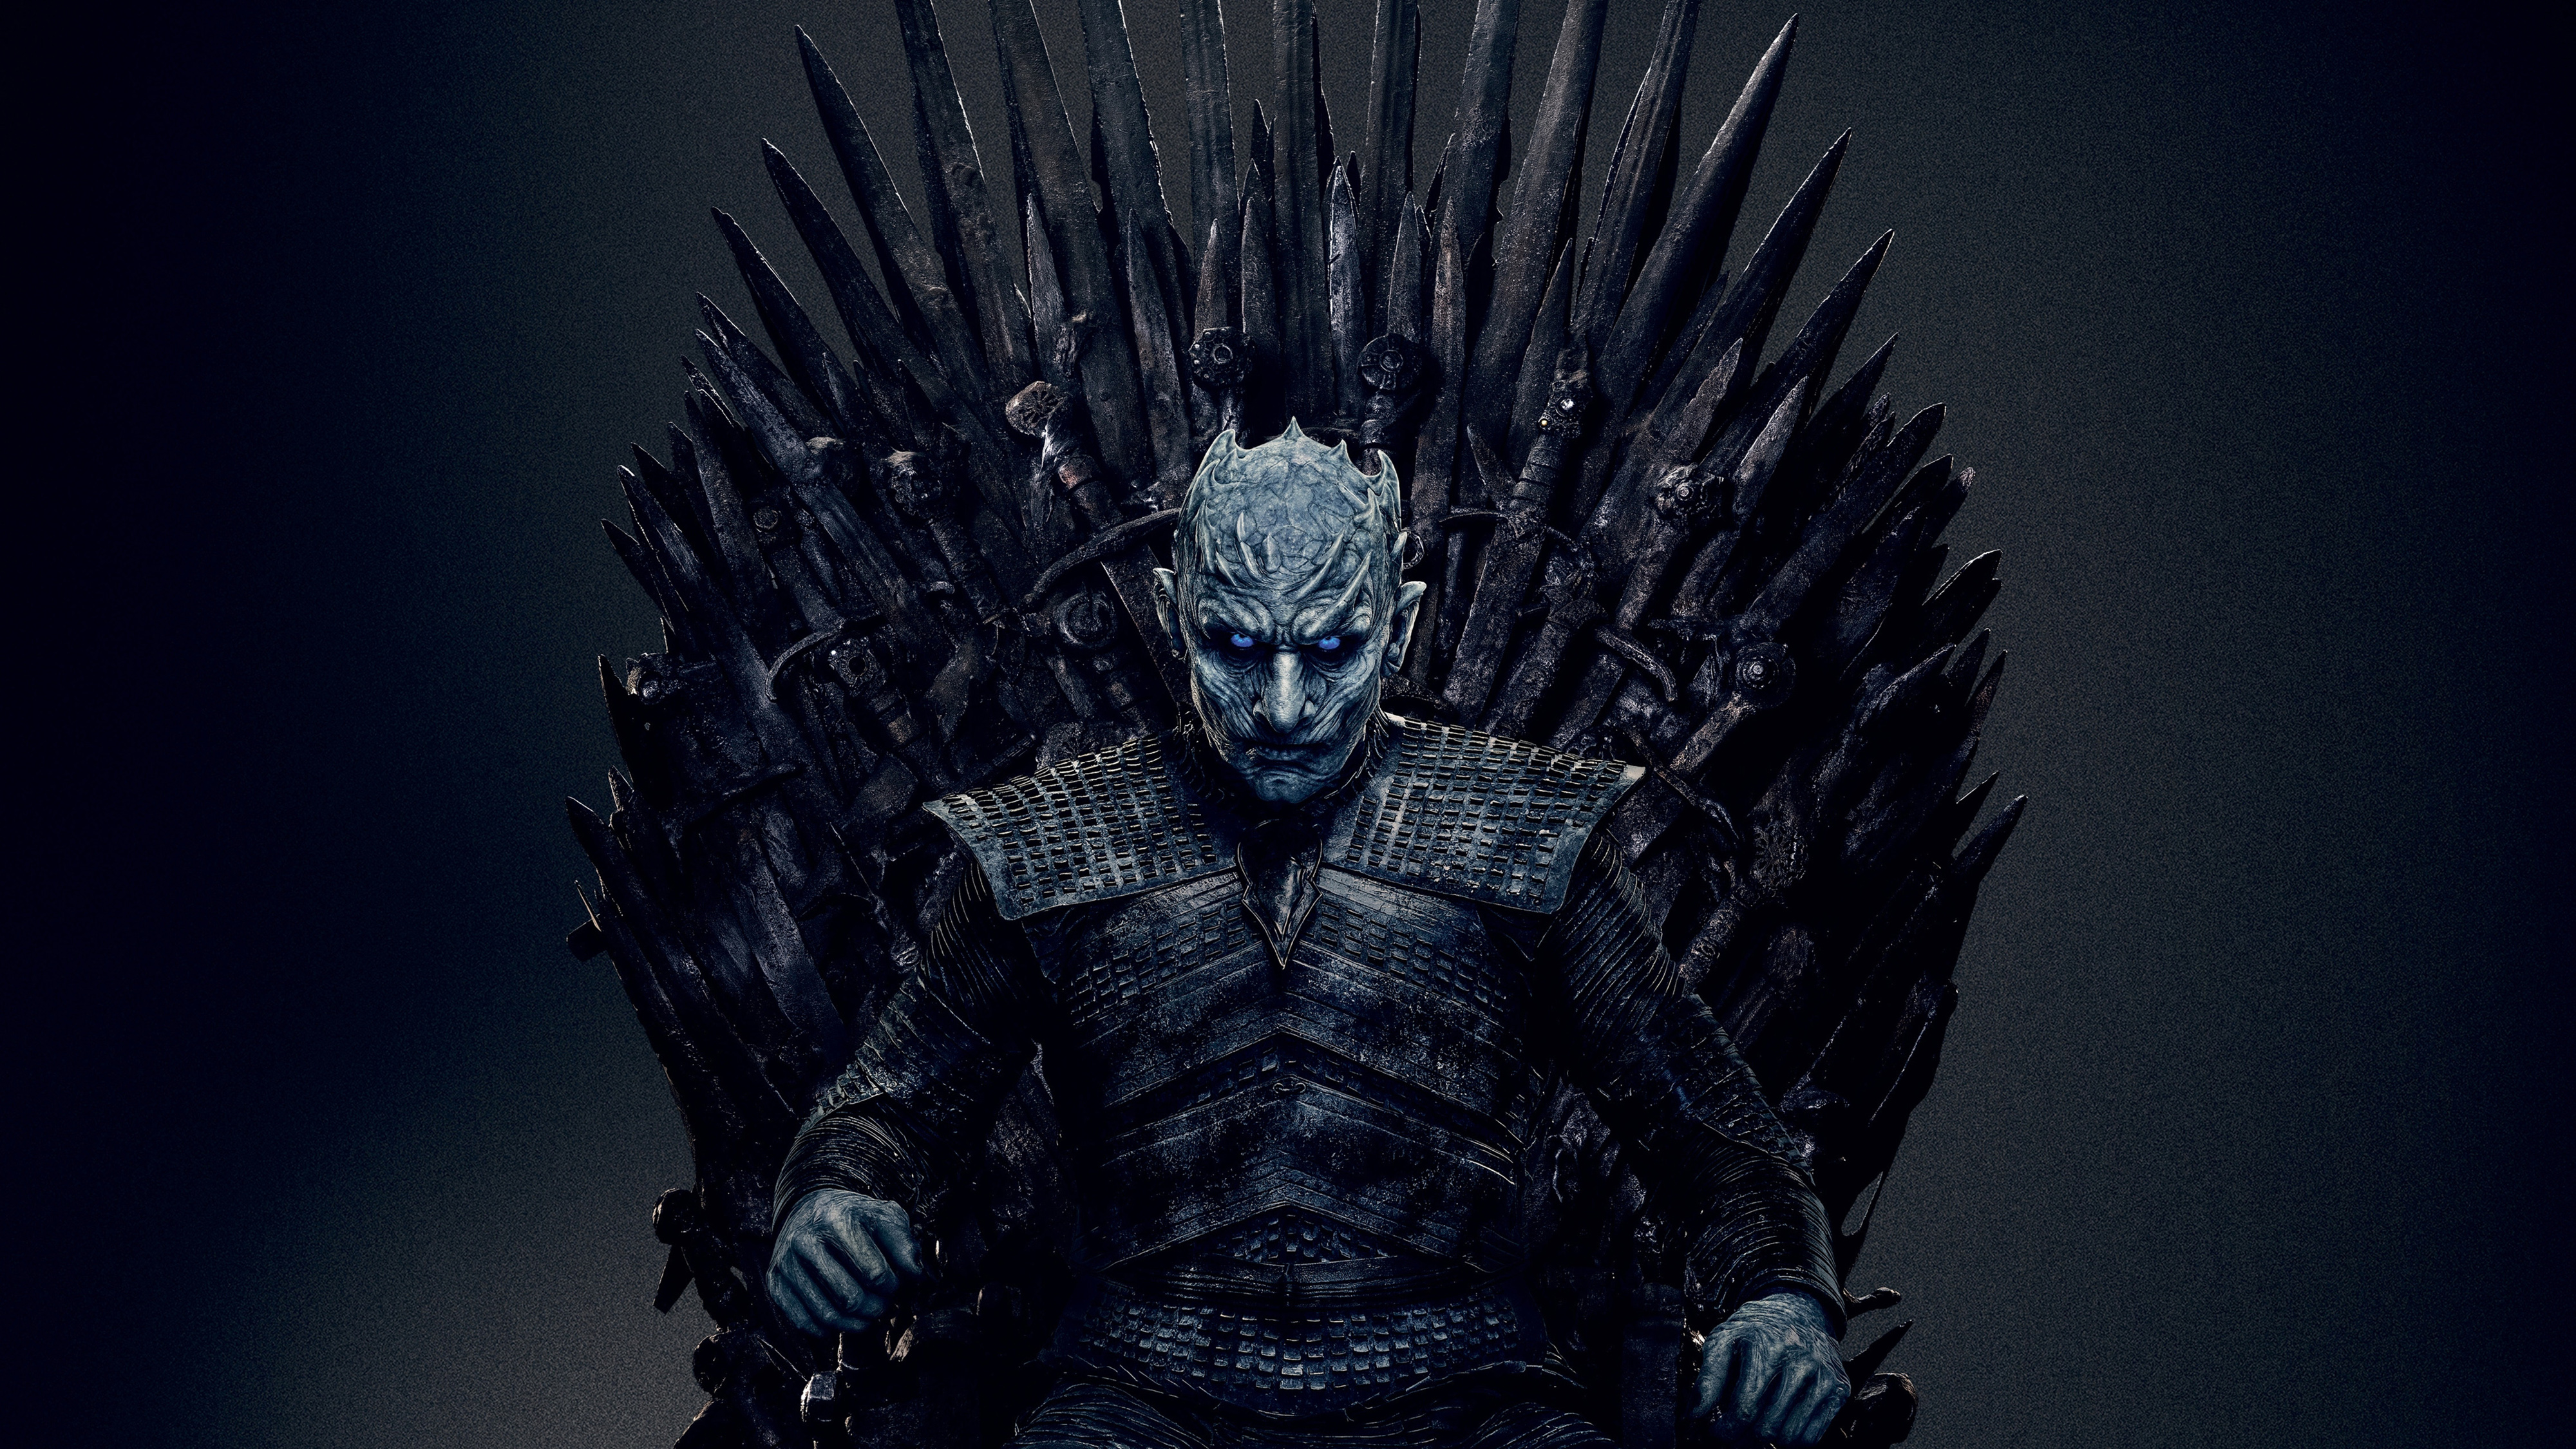 Night King In Game Of Thrones Season 8 4k Wallpapers Hd Wallpapers